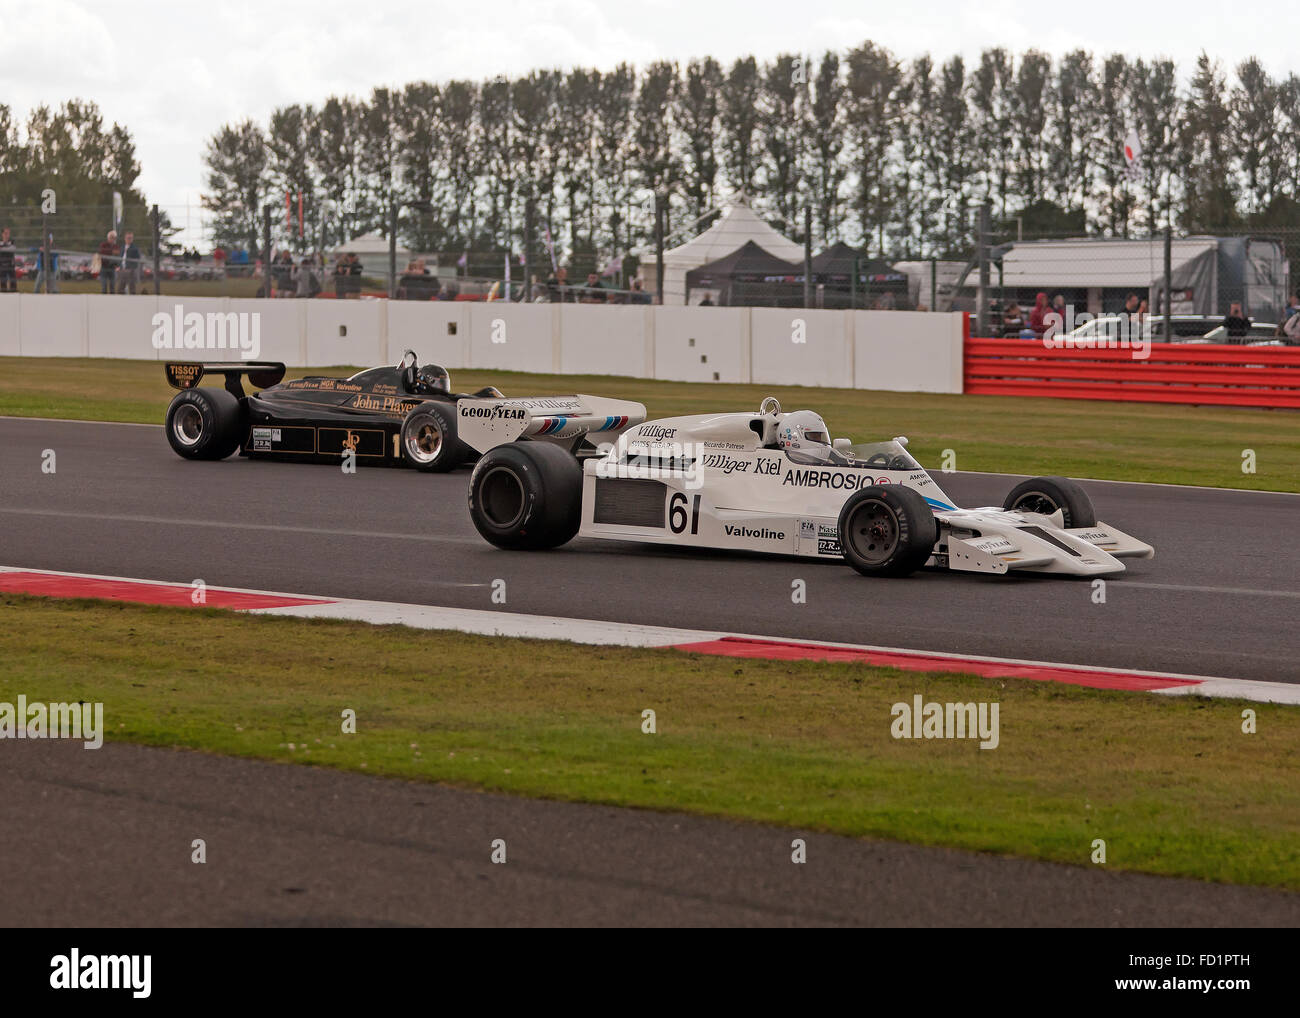 A Shadow DN8 racing against a Lotus 91/5 during the FIA Masters Historic Formula One Race at the Silverstone Classic, - Stock Image